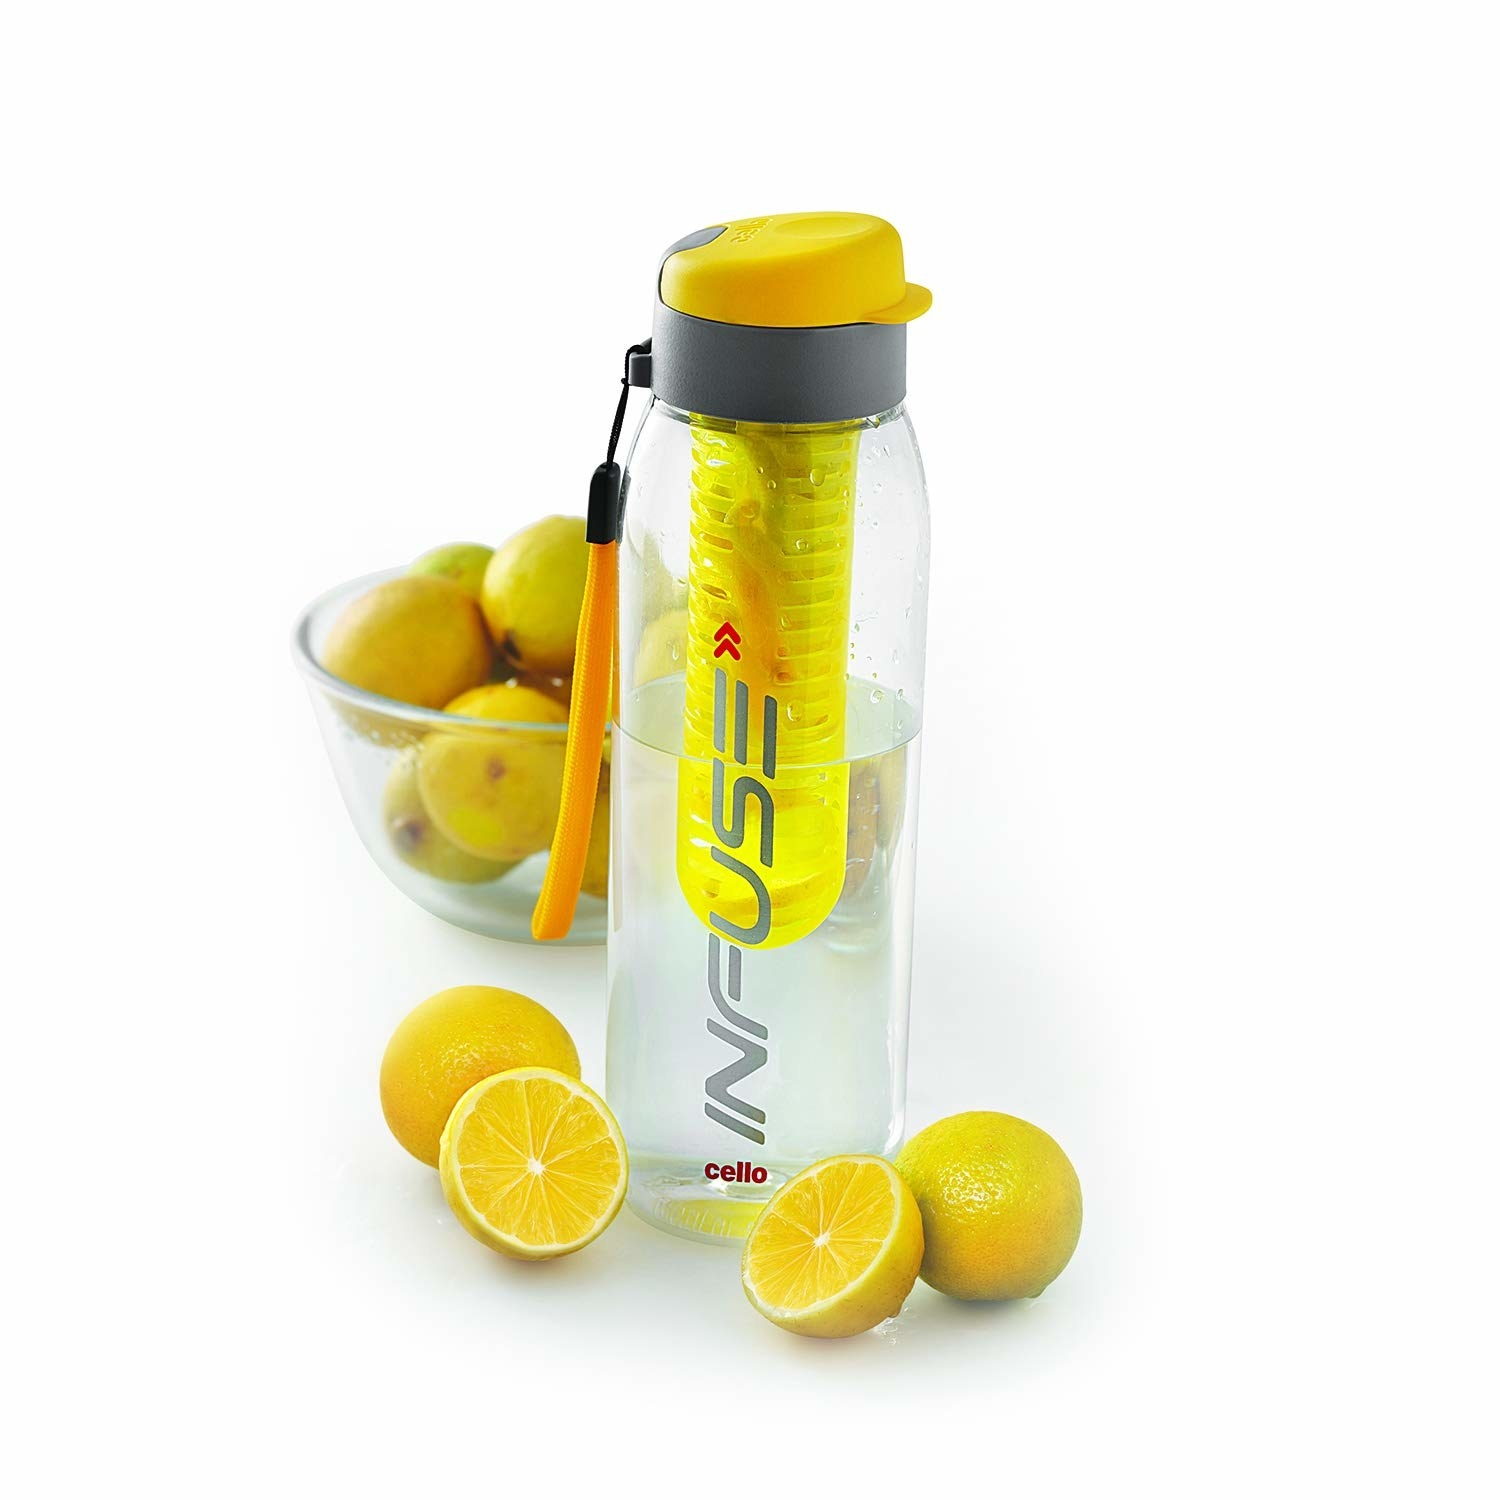 A yellow infuser bottle